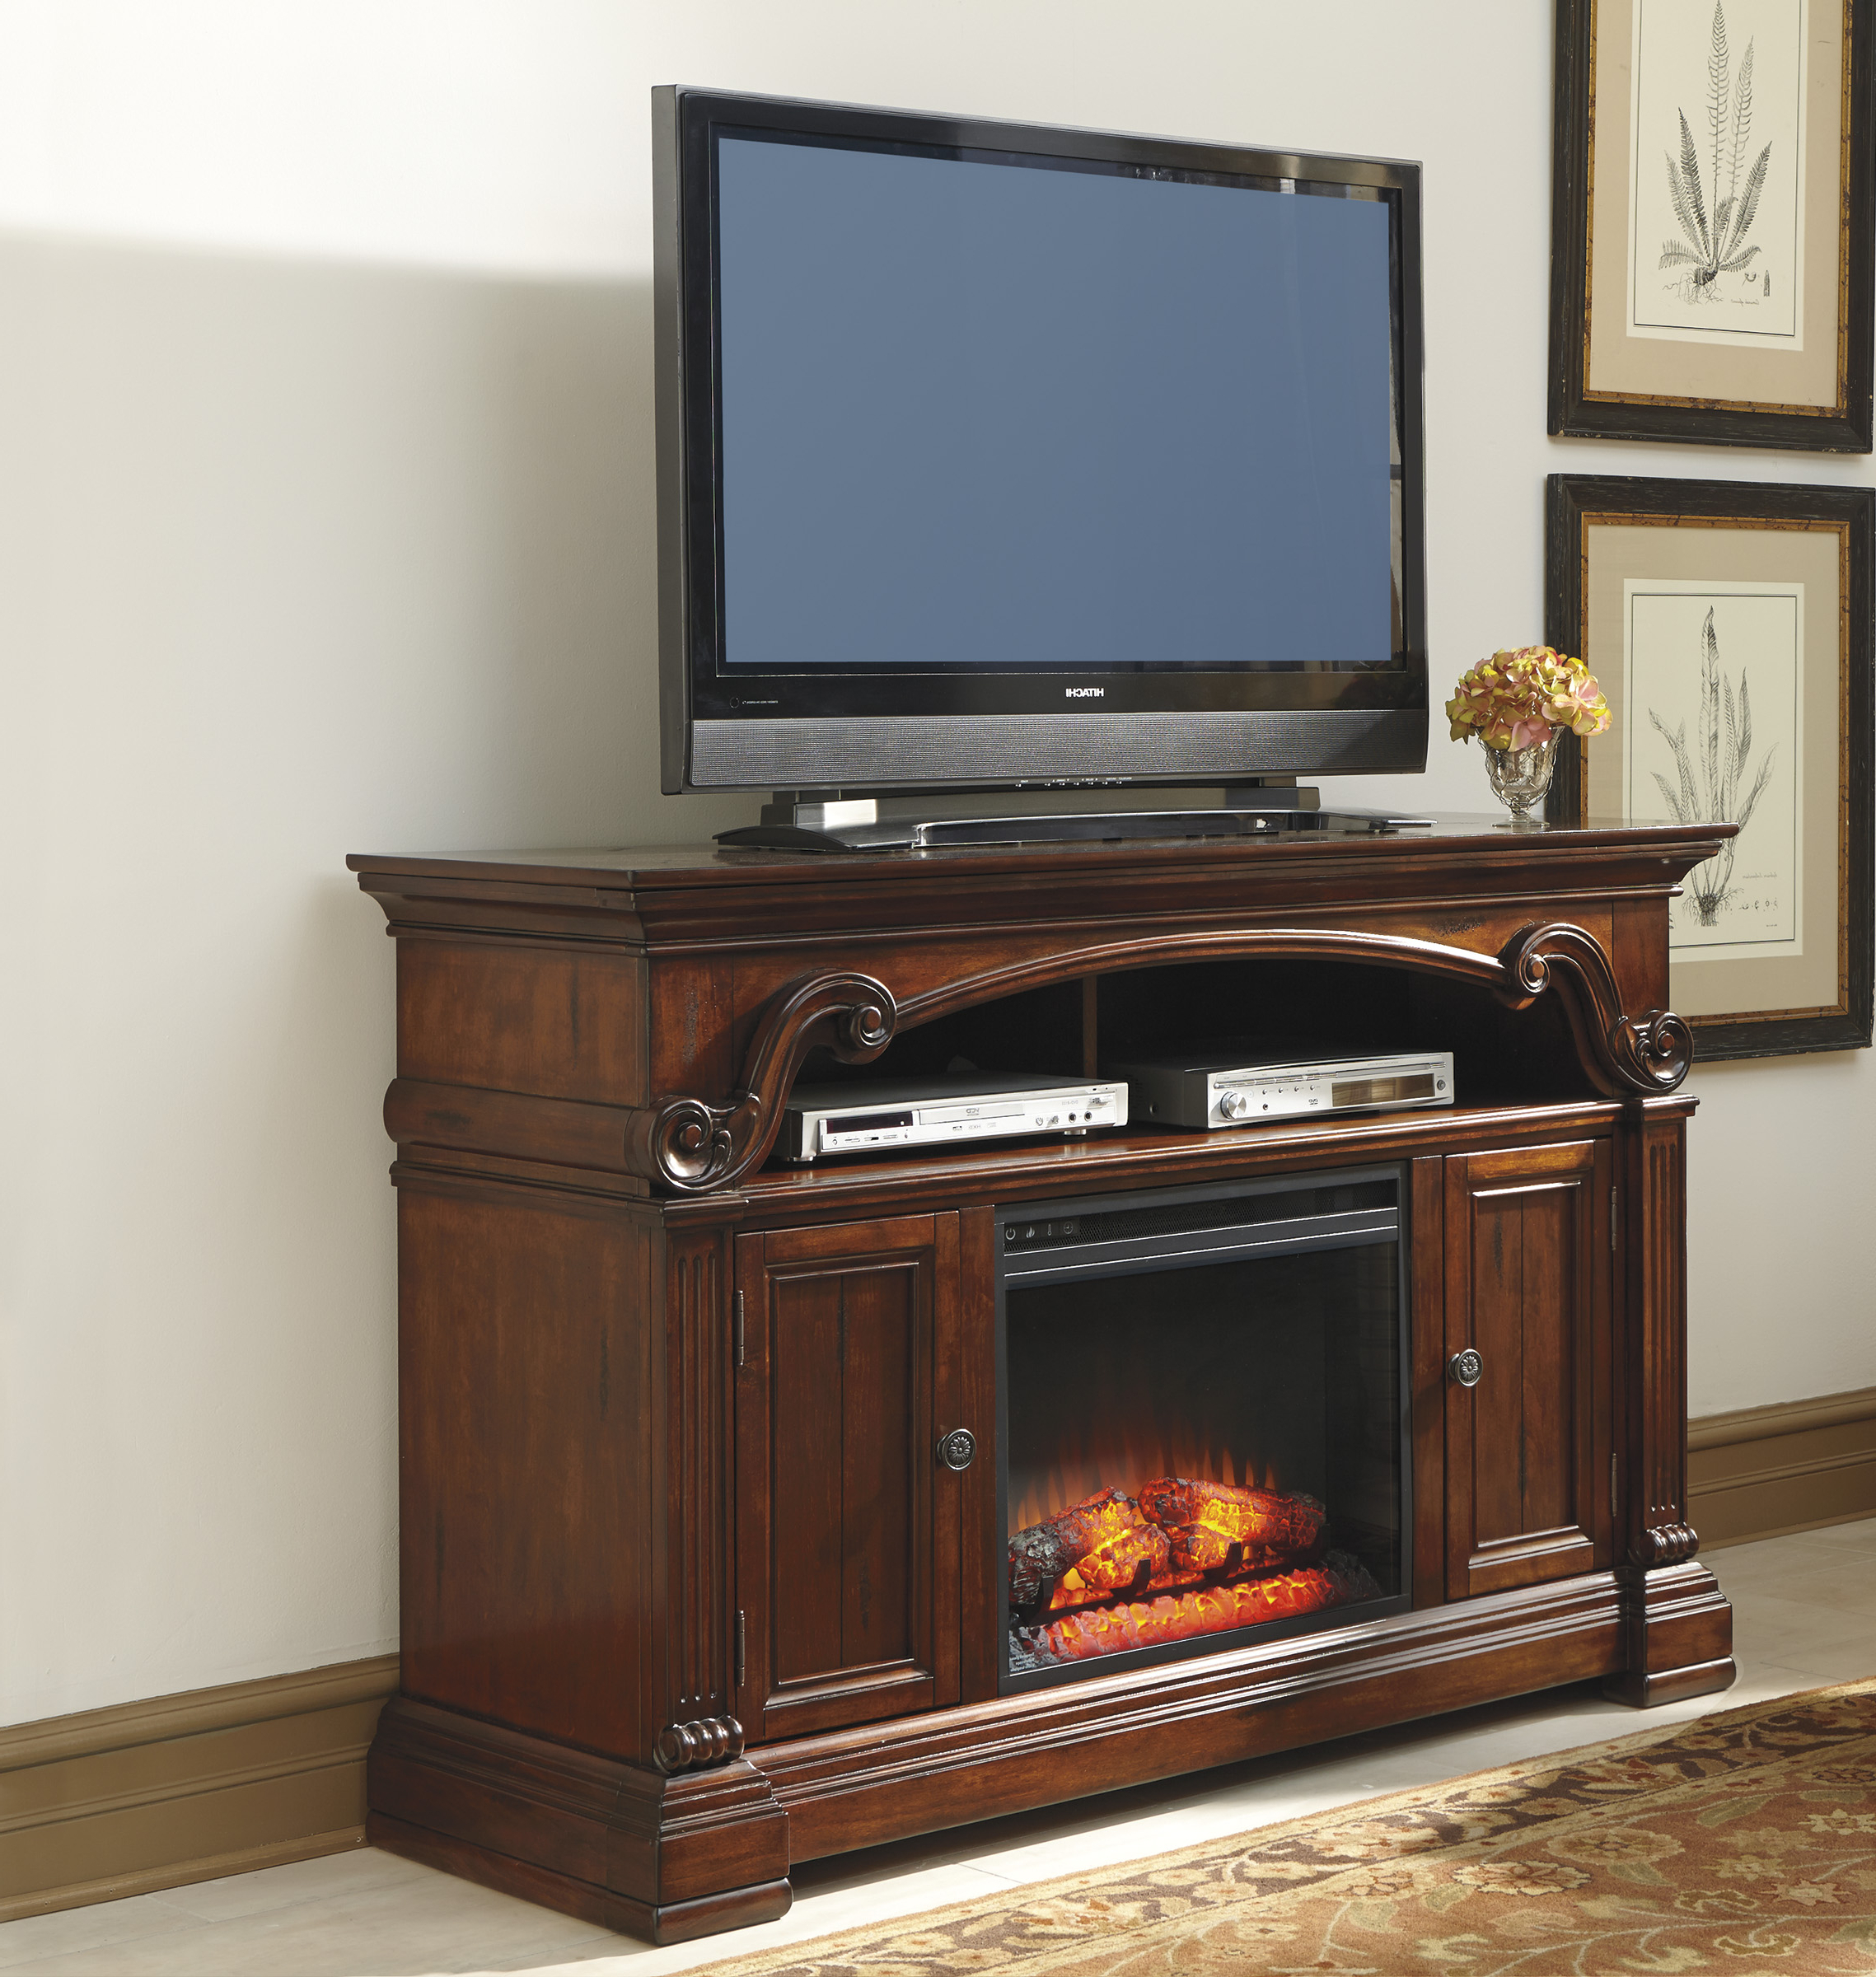 Cool Tv Console With Fireplace For 58 Inch Simple Modern Fireplace Pertaining To Wyatt 68 Inch Tv Stands (View 16 of 20)